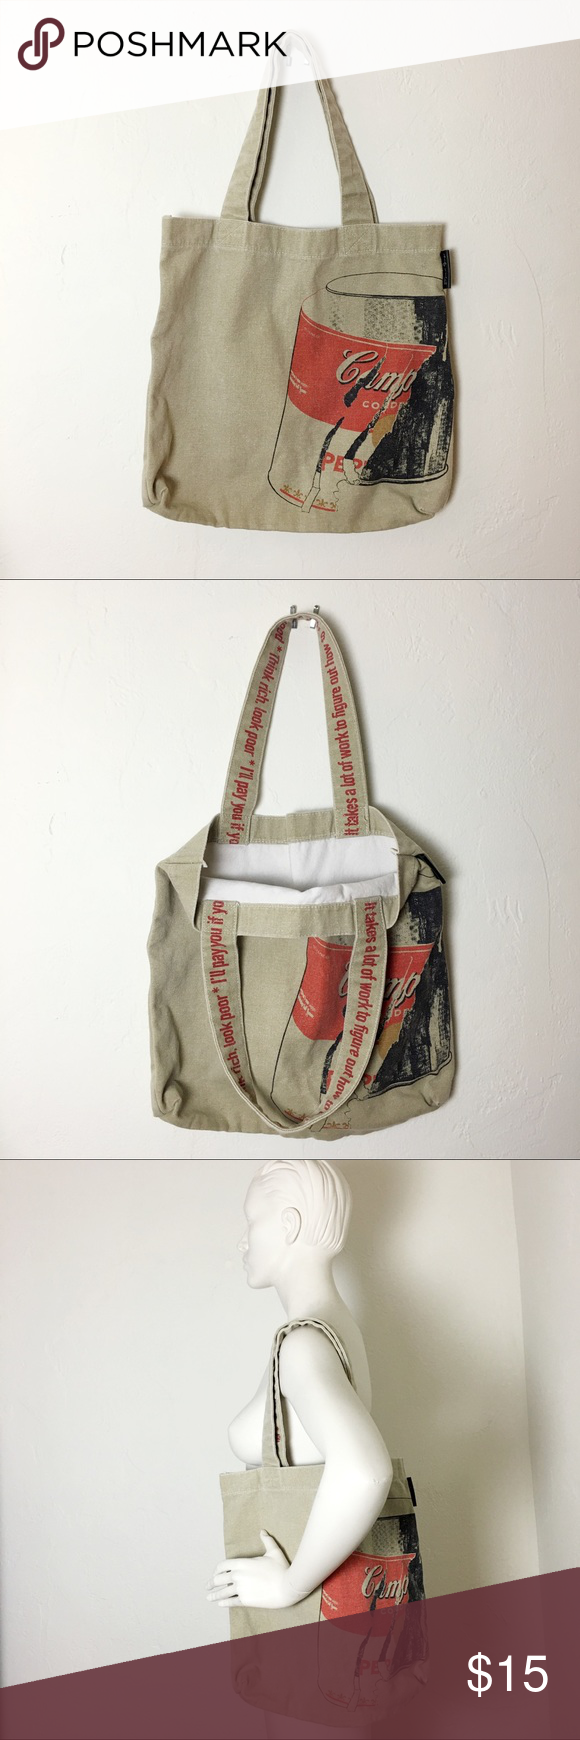 Andy Warhol Campbell S Soup Can Tote Canvas Gently Used Minor Stain Shown In Last 2 Pics Bags Totes Bags Totes Tote Bags